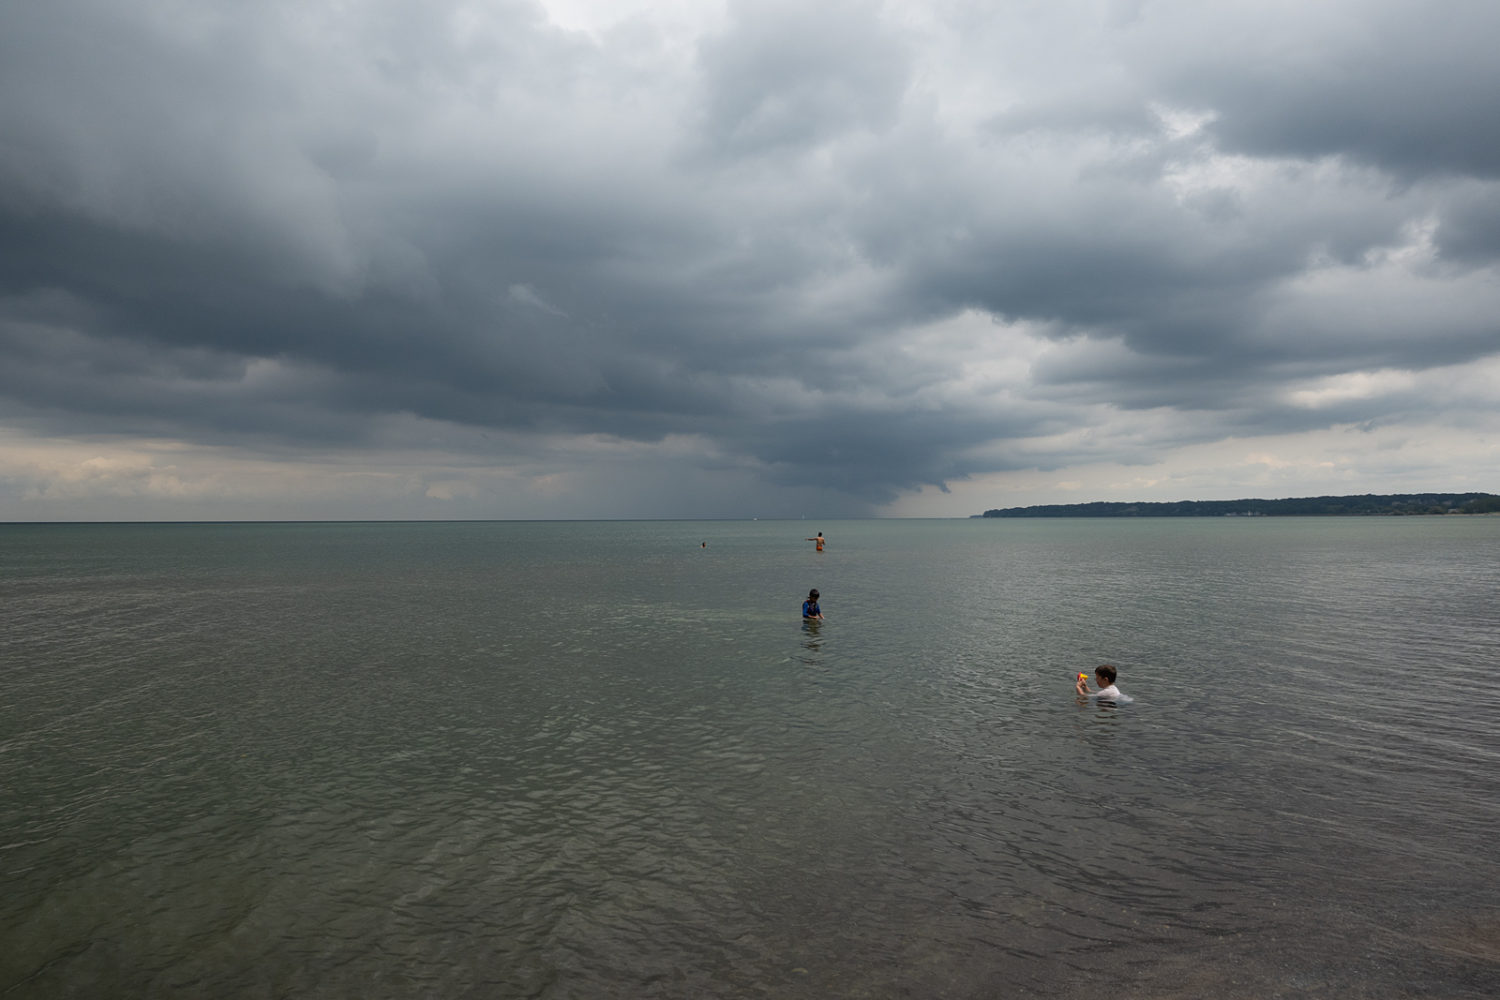 Bathers in Lake Ontario with dark clouds